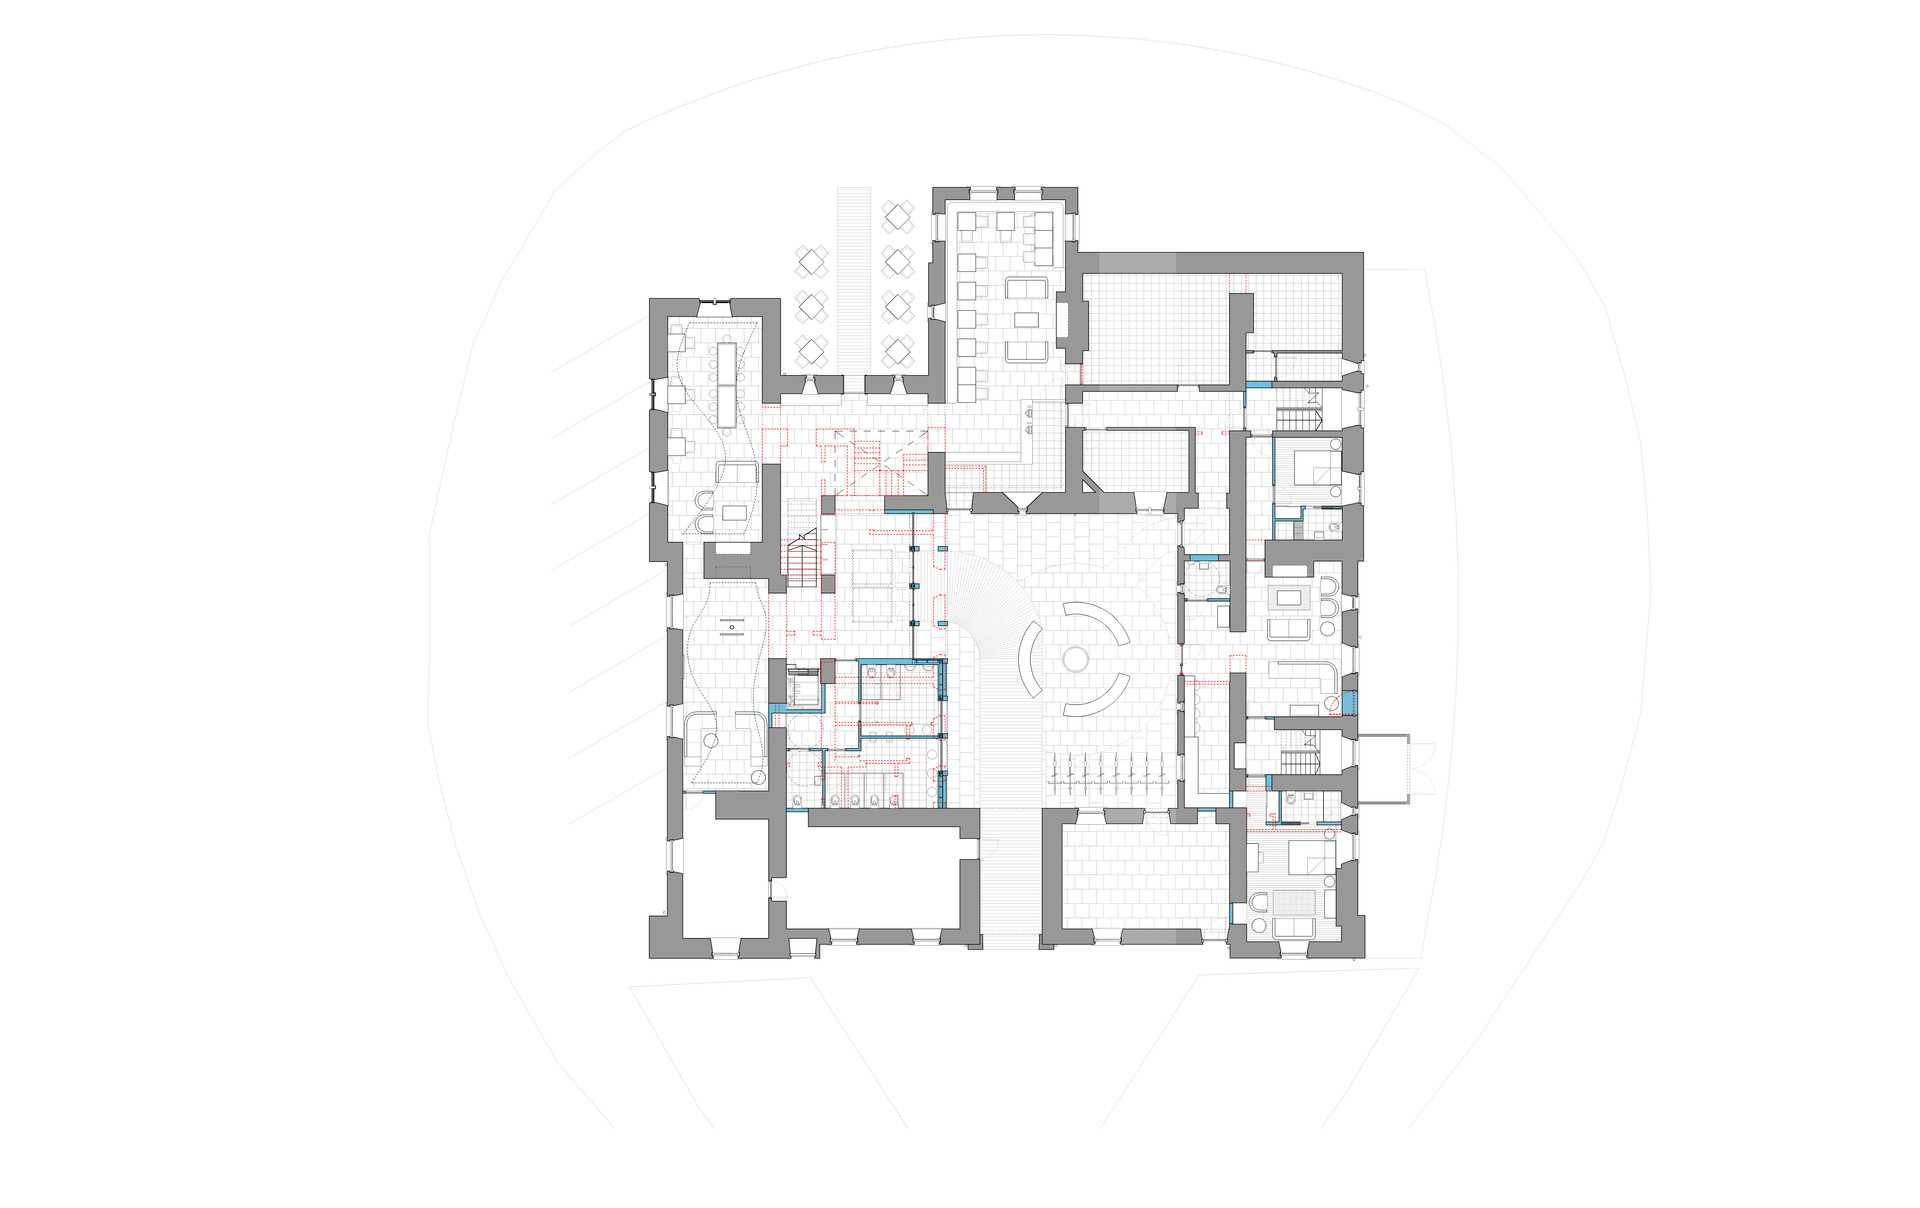 Ground Floor Plan A1 - 1-100.jpg